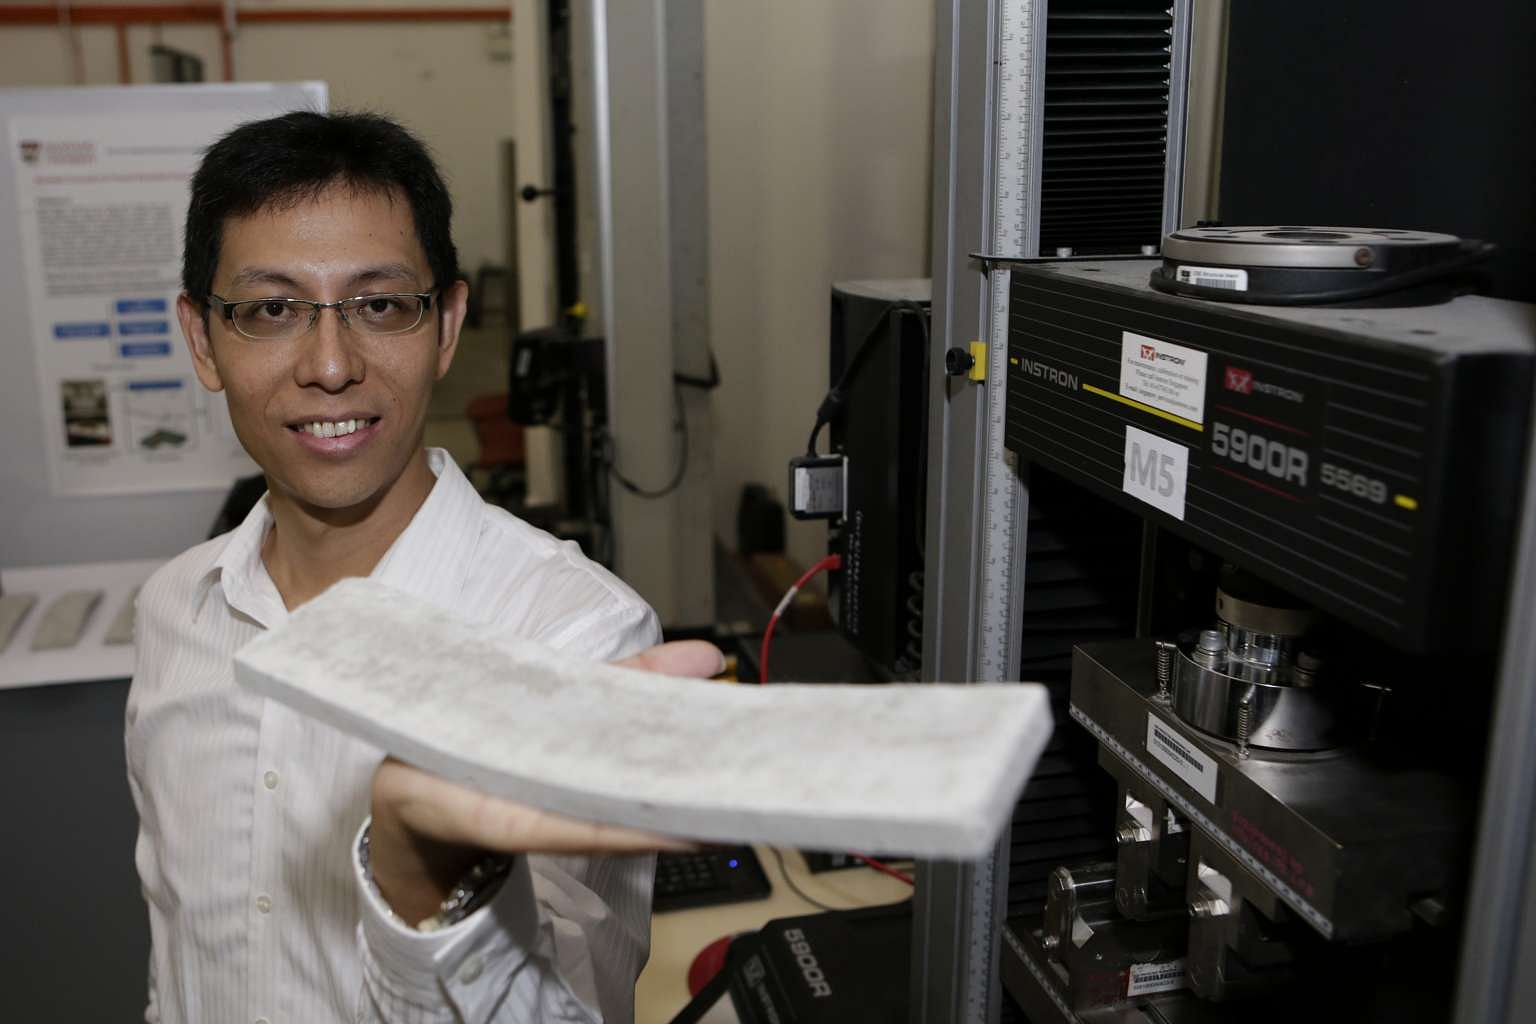 NTU-JTC scientists have developed flexible concrete that is stronger and more durable than normal 3